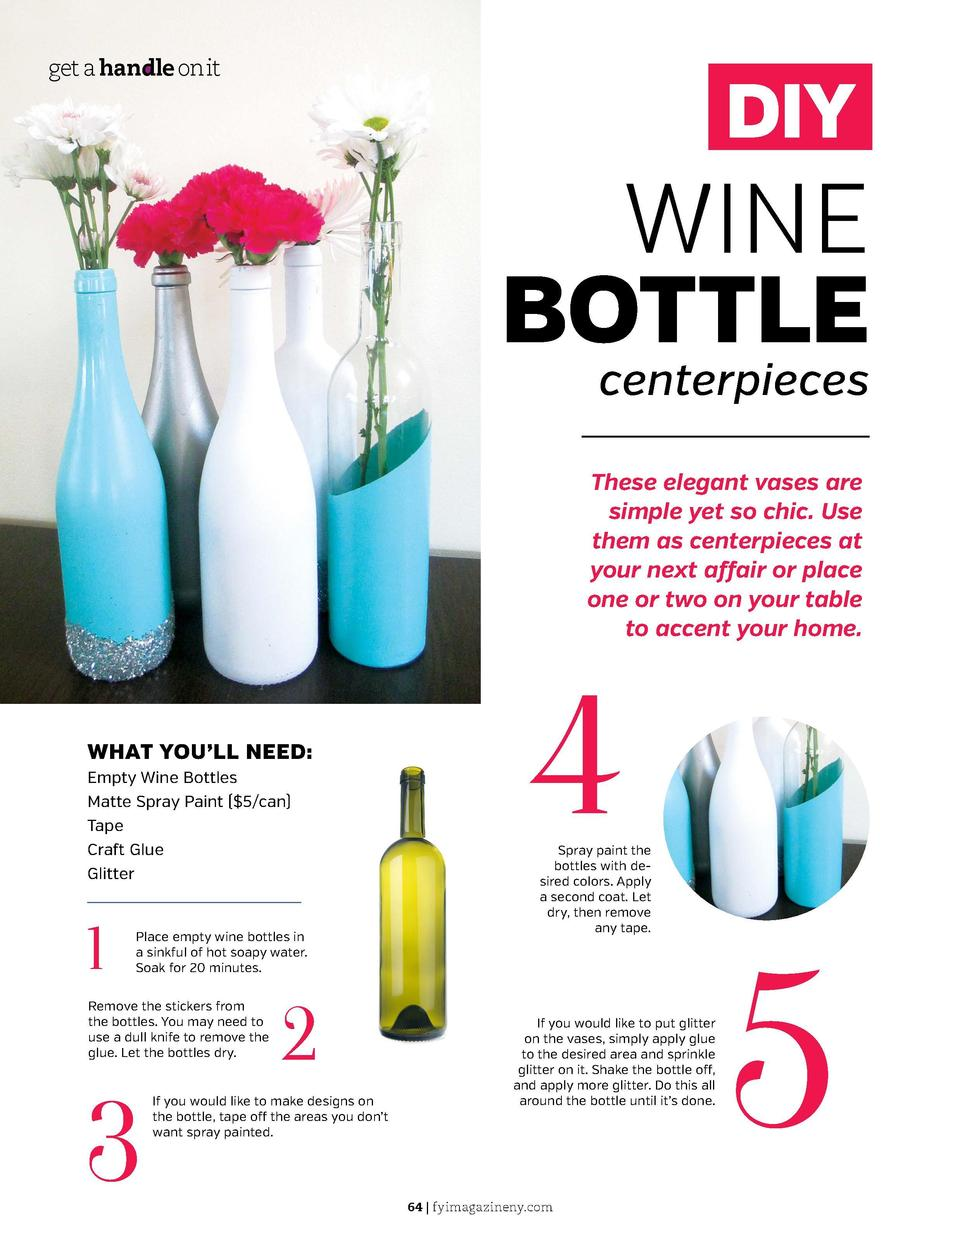 get a handle on it  DIY  WINE BOTTLE centerpieces  These elegant vases are simple yet so chic. Use them as centerpieces at...